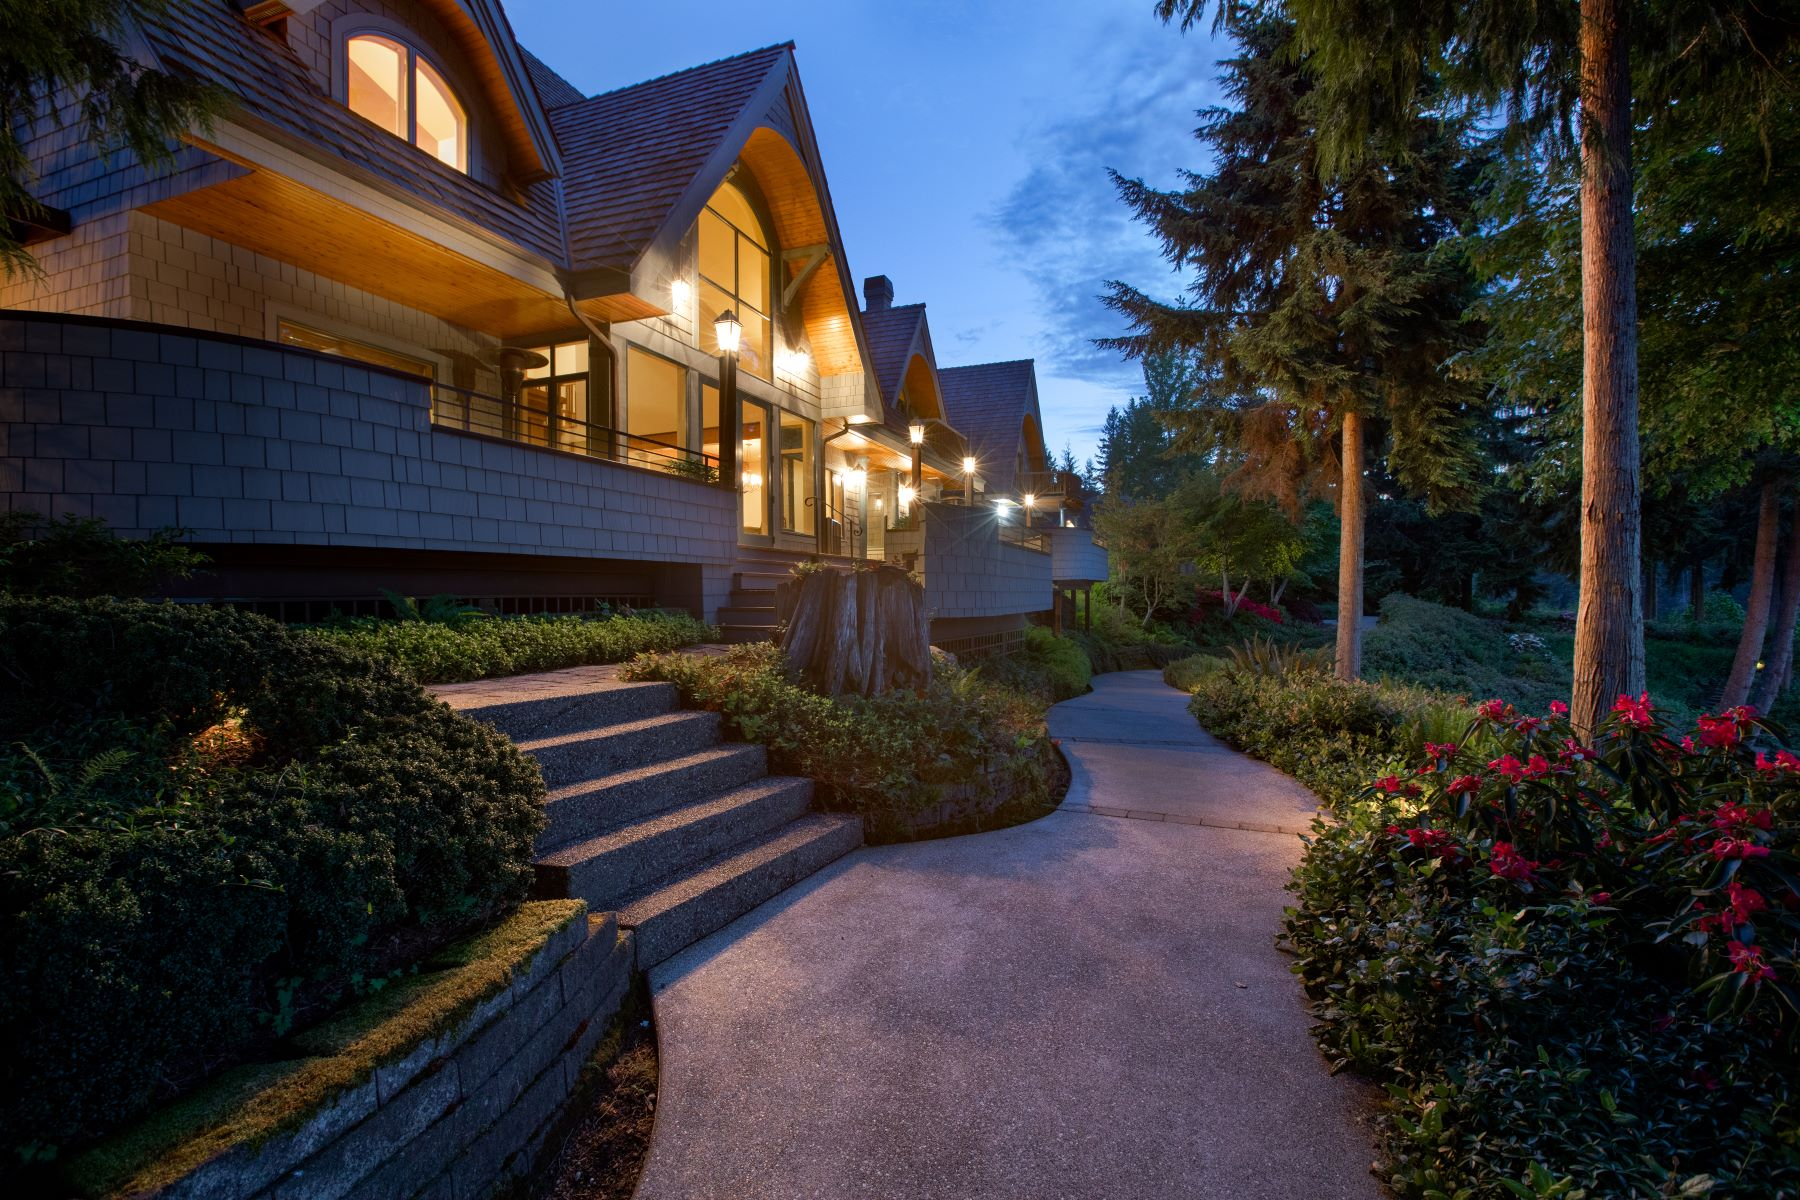 Single Family Homes for Sale at 82 Skiff Lane, Port Ludlow, WA 98365 82 Skiff Lane Port Ludlow, Washington 98365 United States